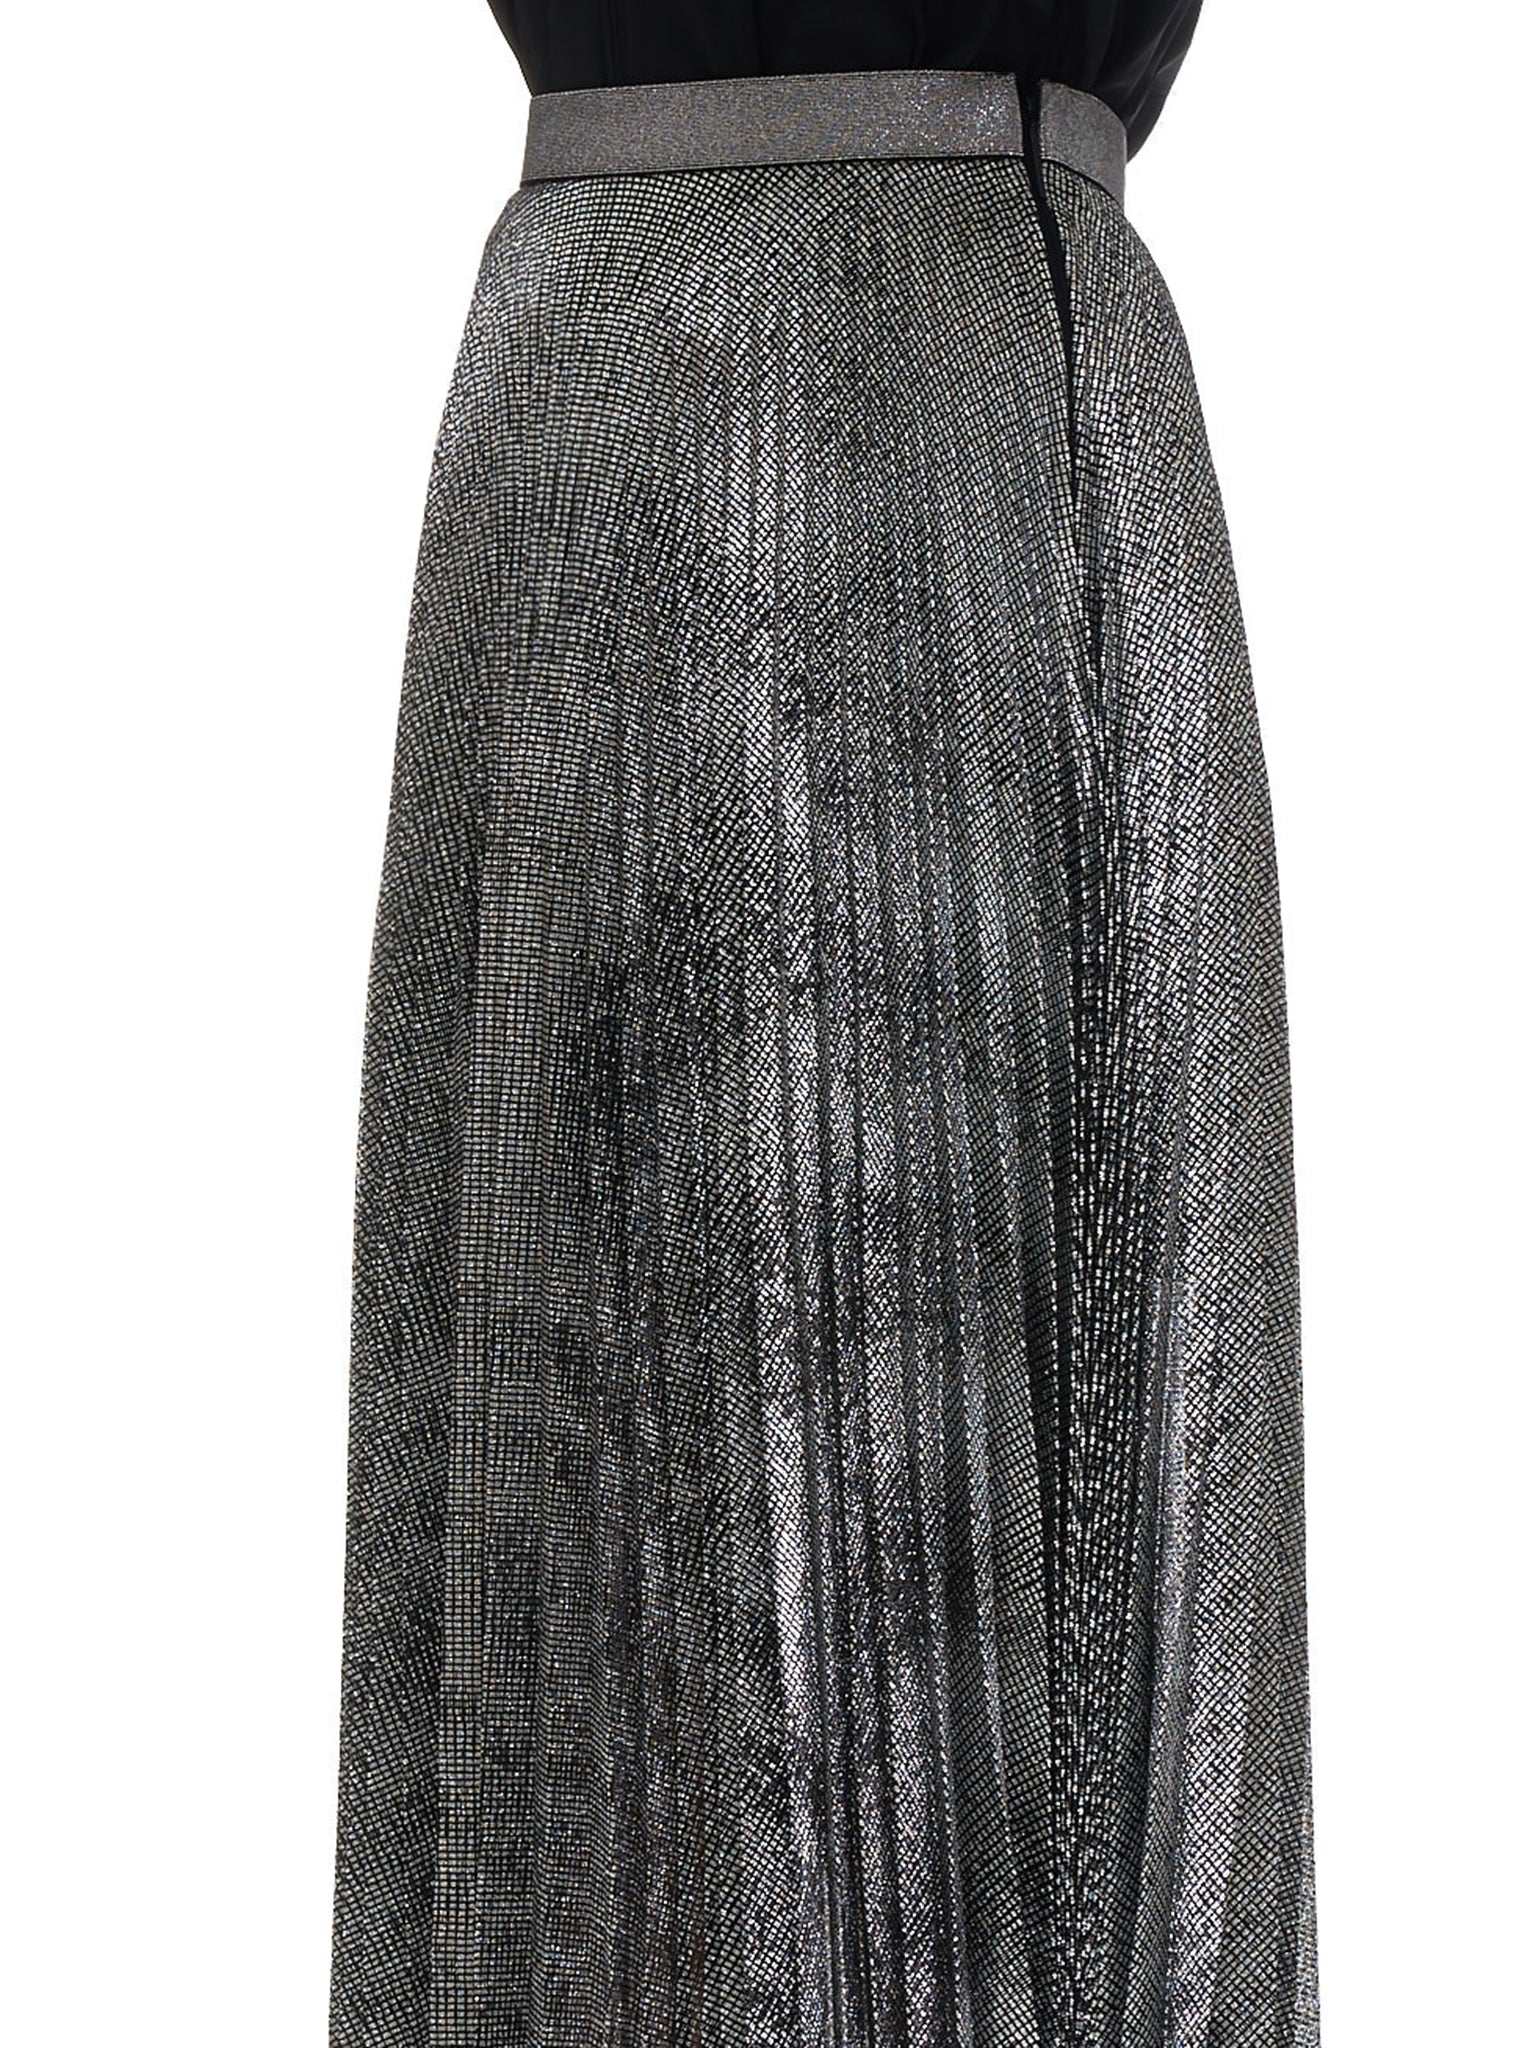 Christopher Kane Skirt - Hlorenzo Detail 1